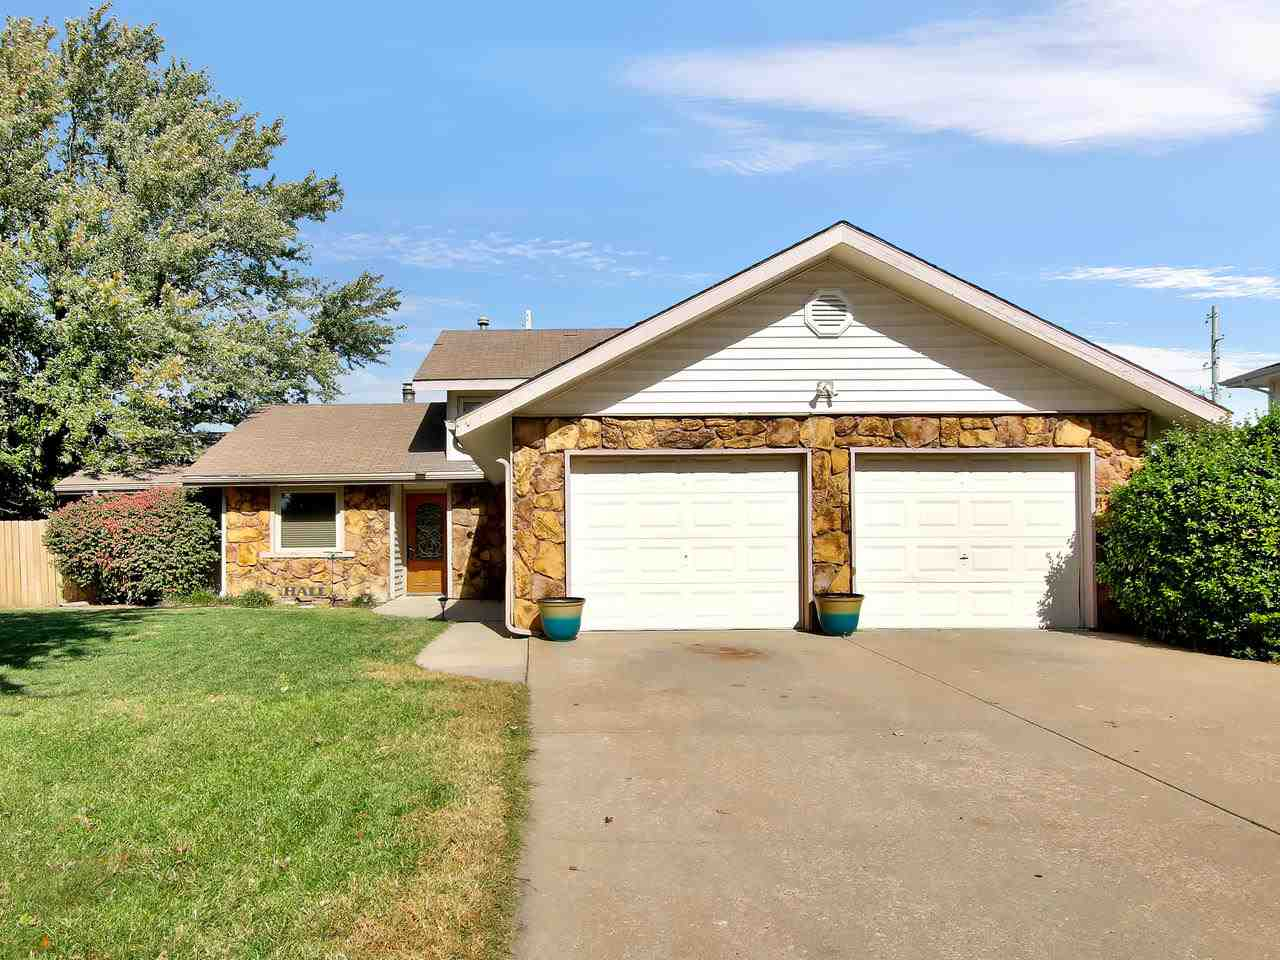 Desirable Andover Living!  This Tri-Level Home offers 3BR, 2.5BA with Office.  Spacious Living Room